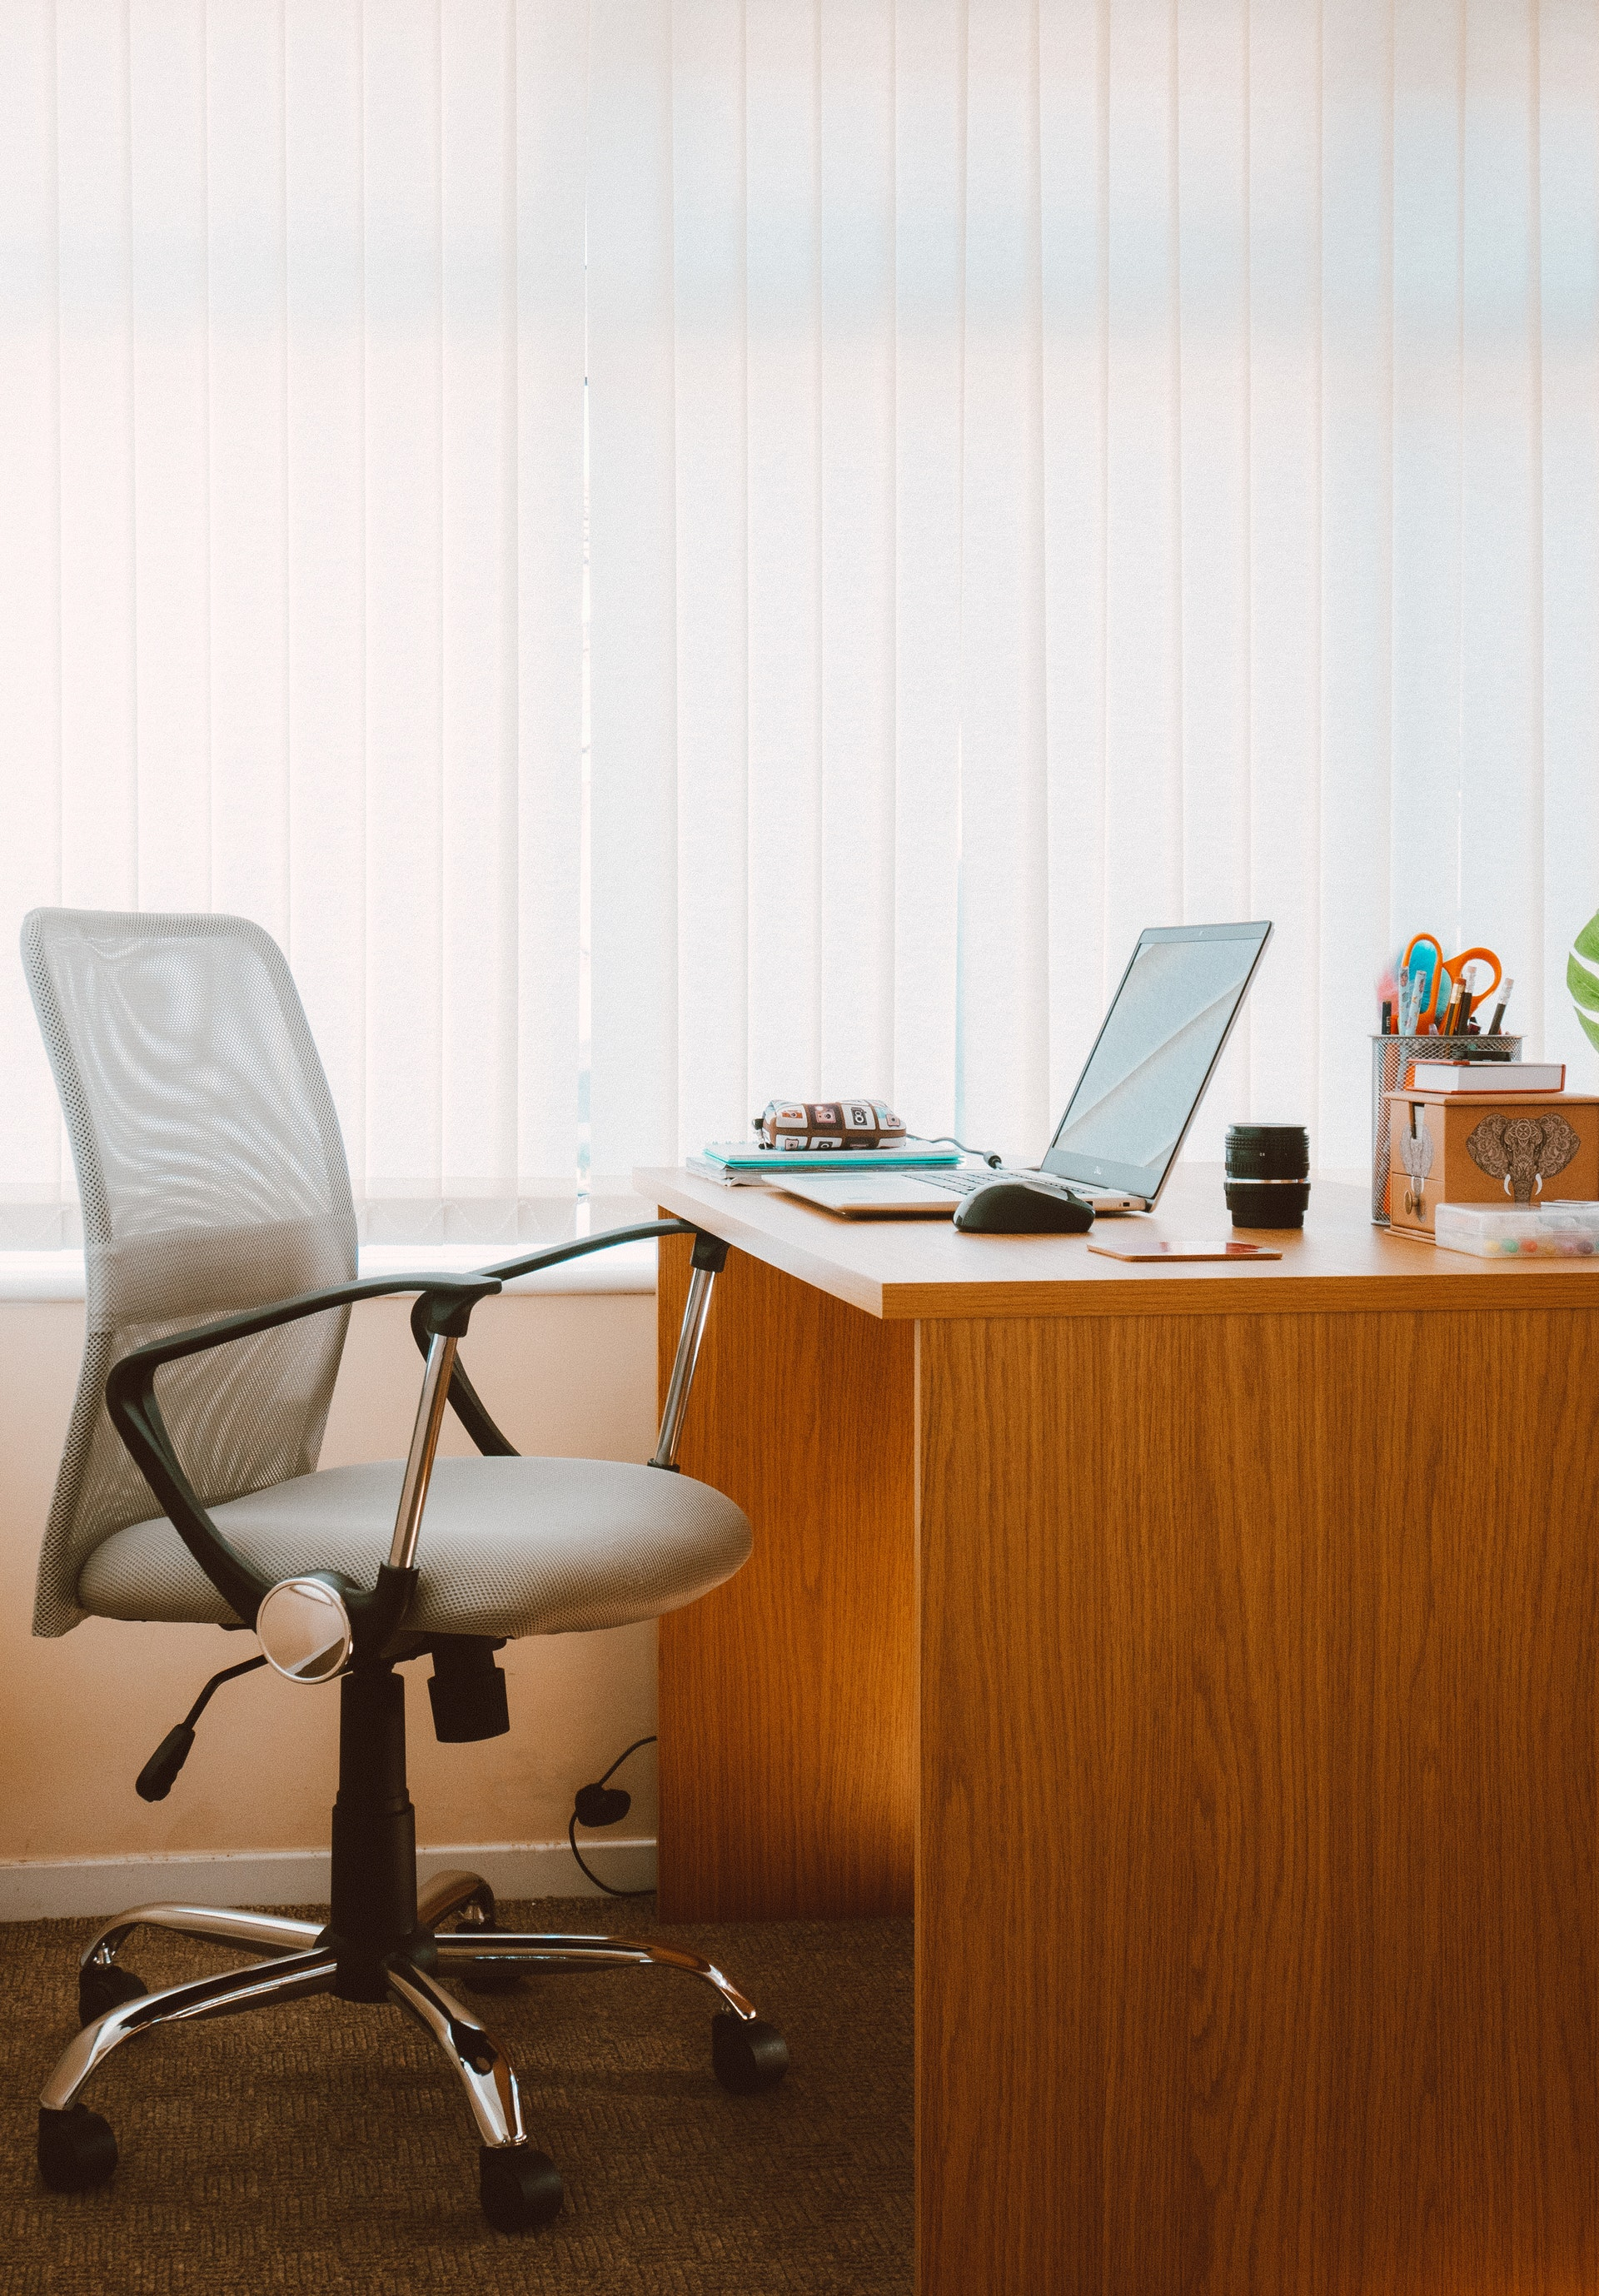 5 Ways To Ensure Quality And Durability Of Your Office Chairs